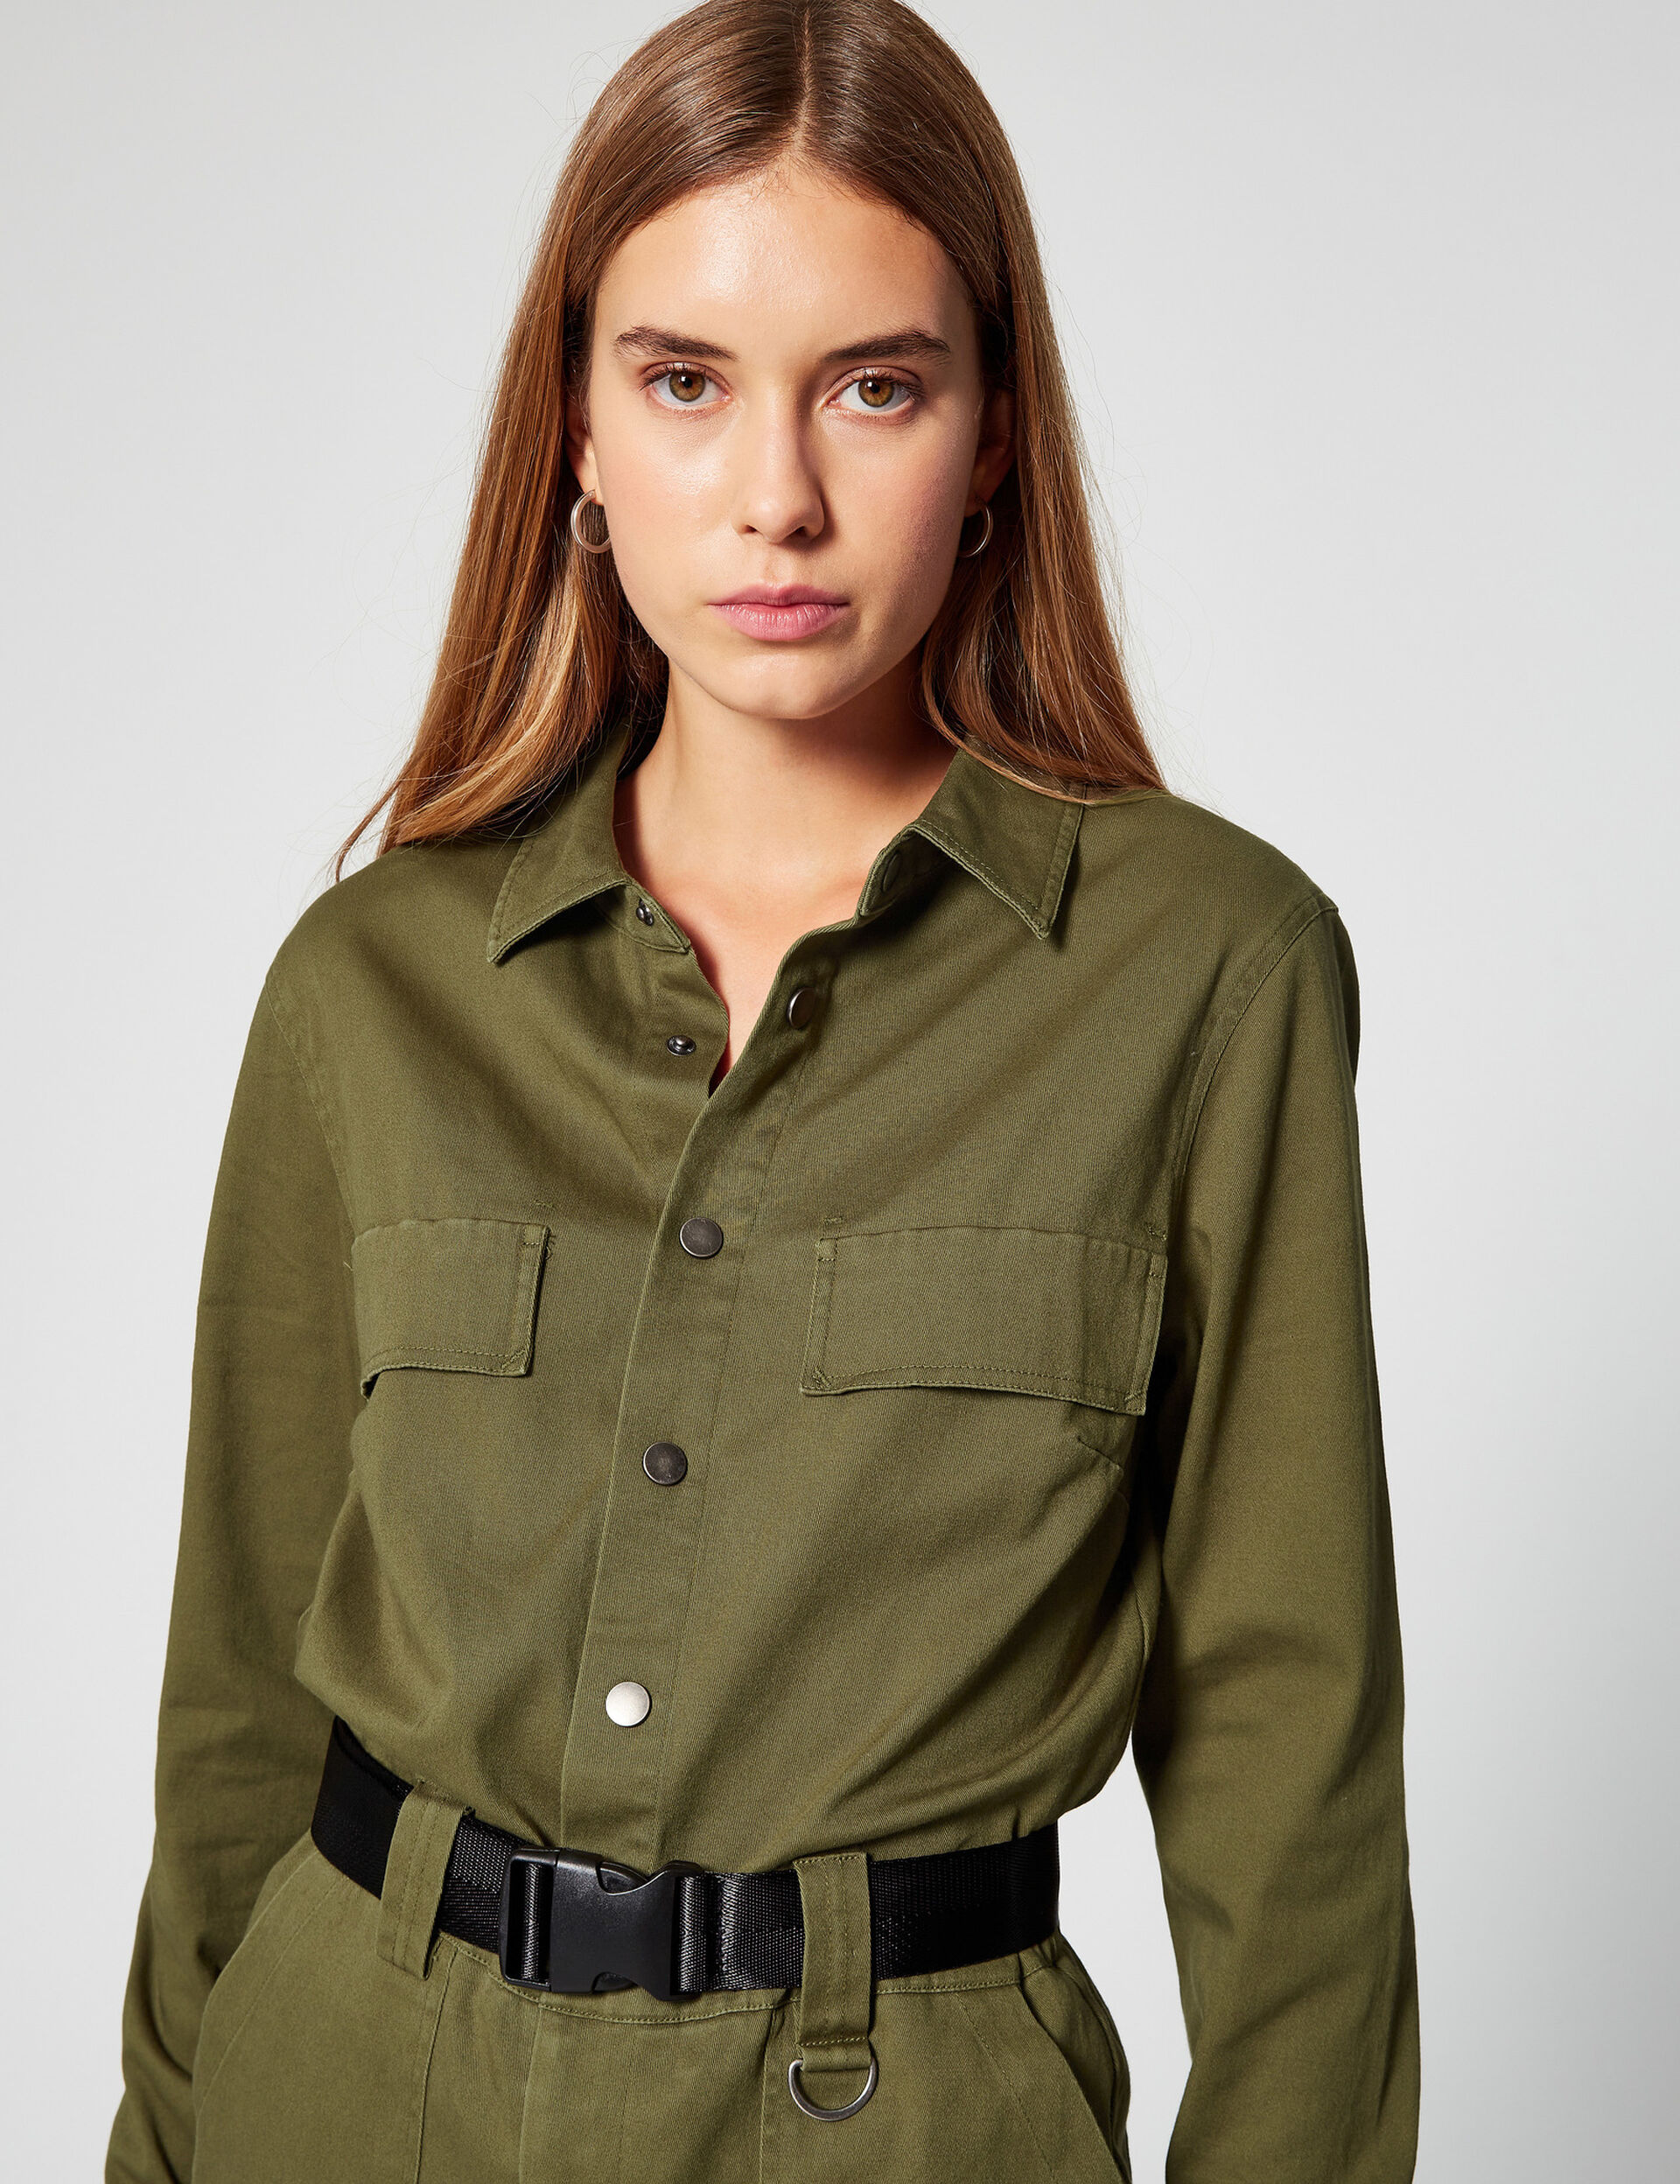 Military-style jumpsuit